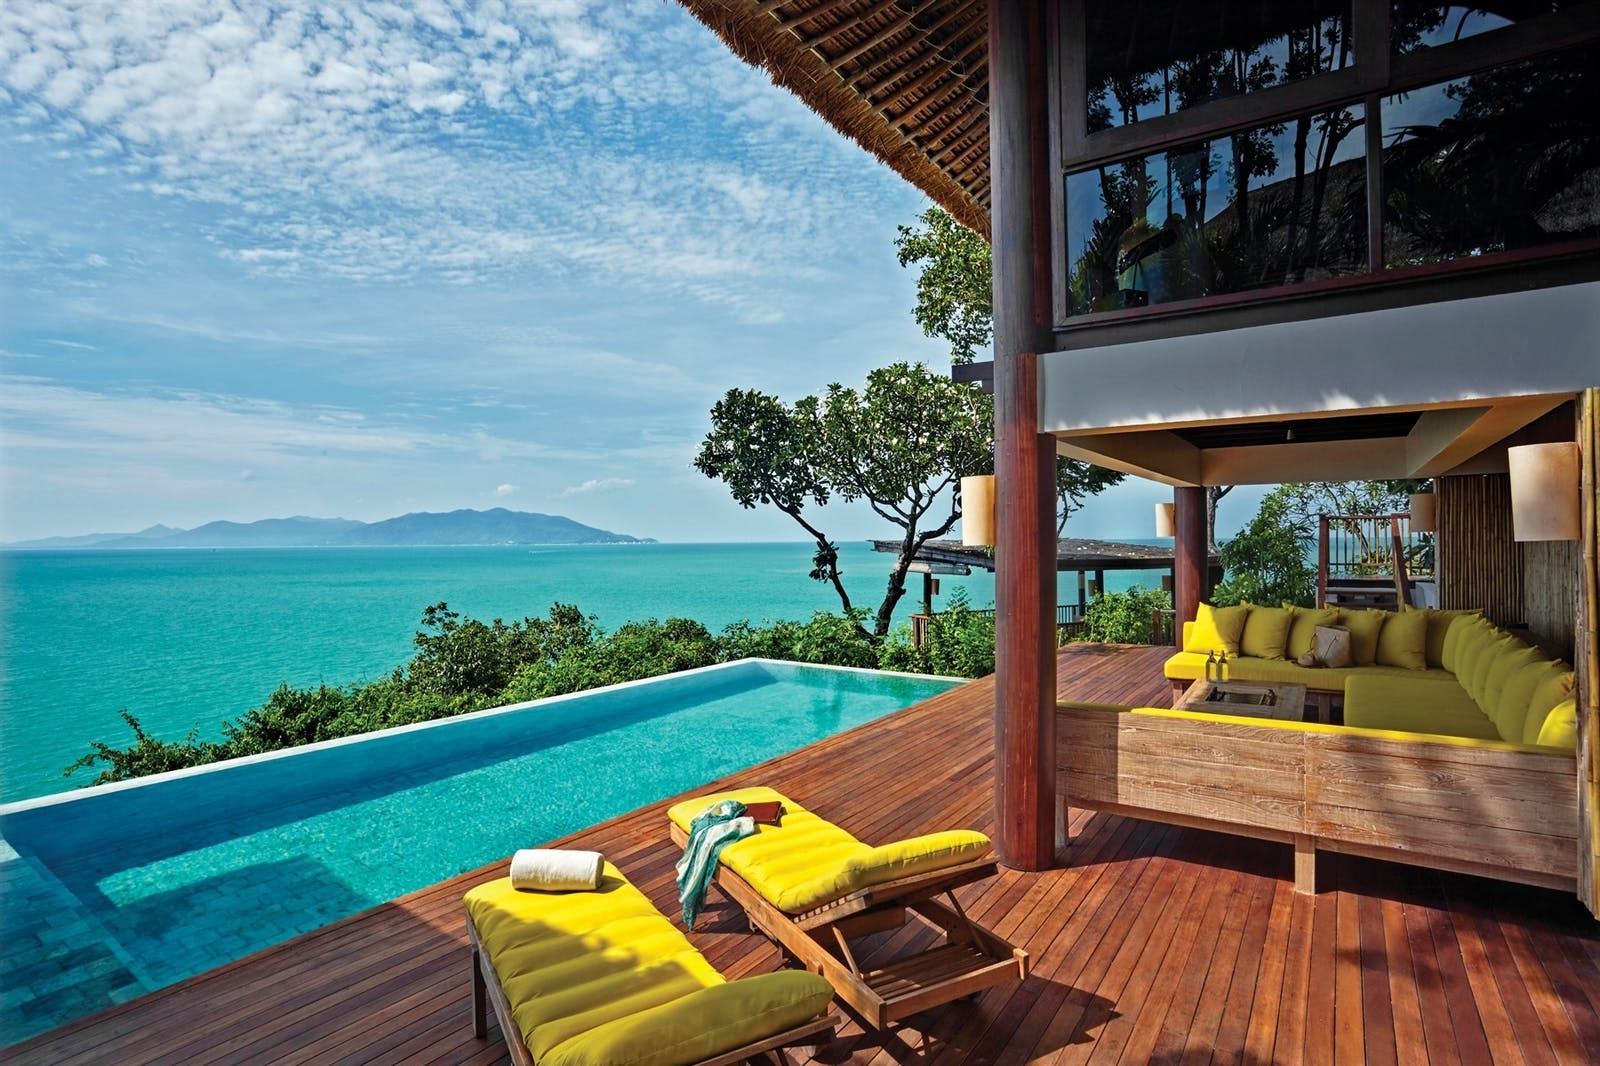 The Ocean Retreat Pool Deck, Six Senses Samui, Koh Samui, Thailand